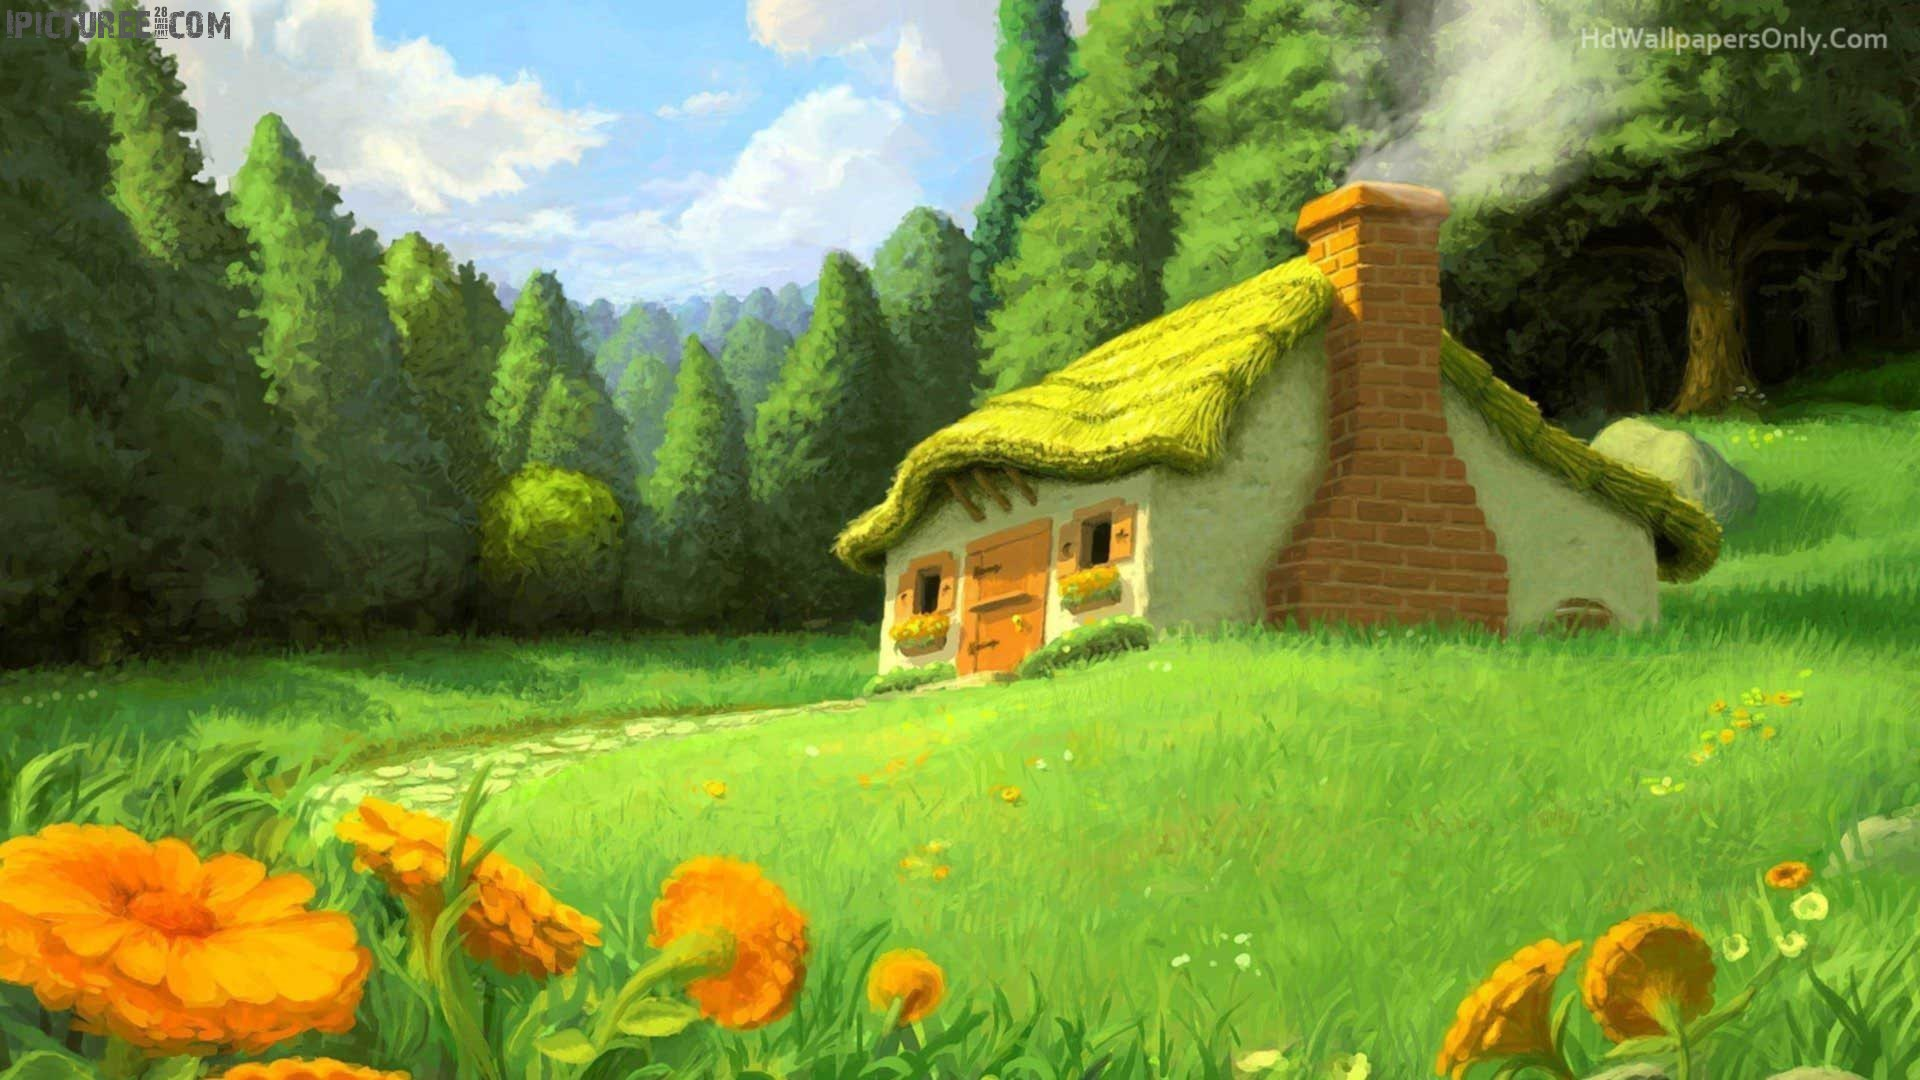 Beautiful House in the Garden Scenery Wallpapers HDHD Wallpapers Only